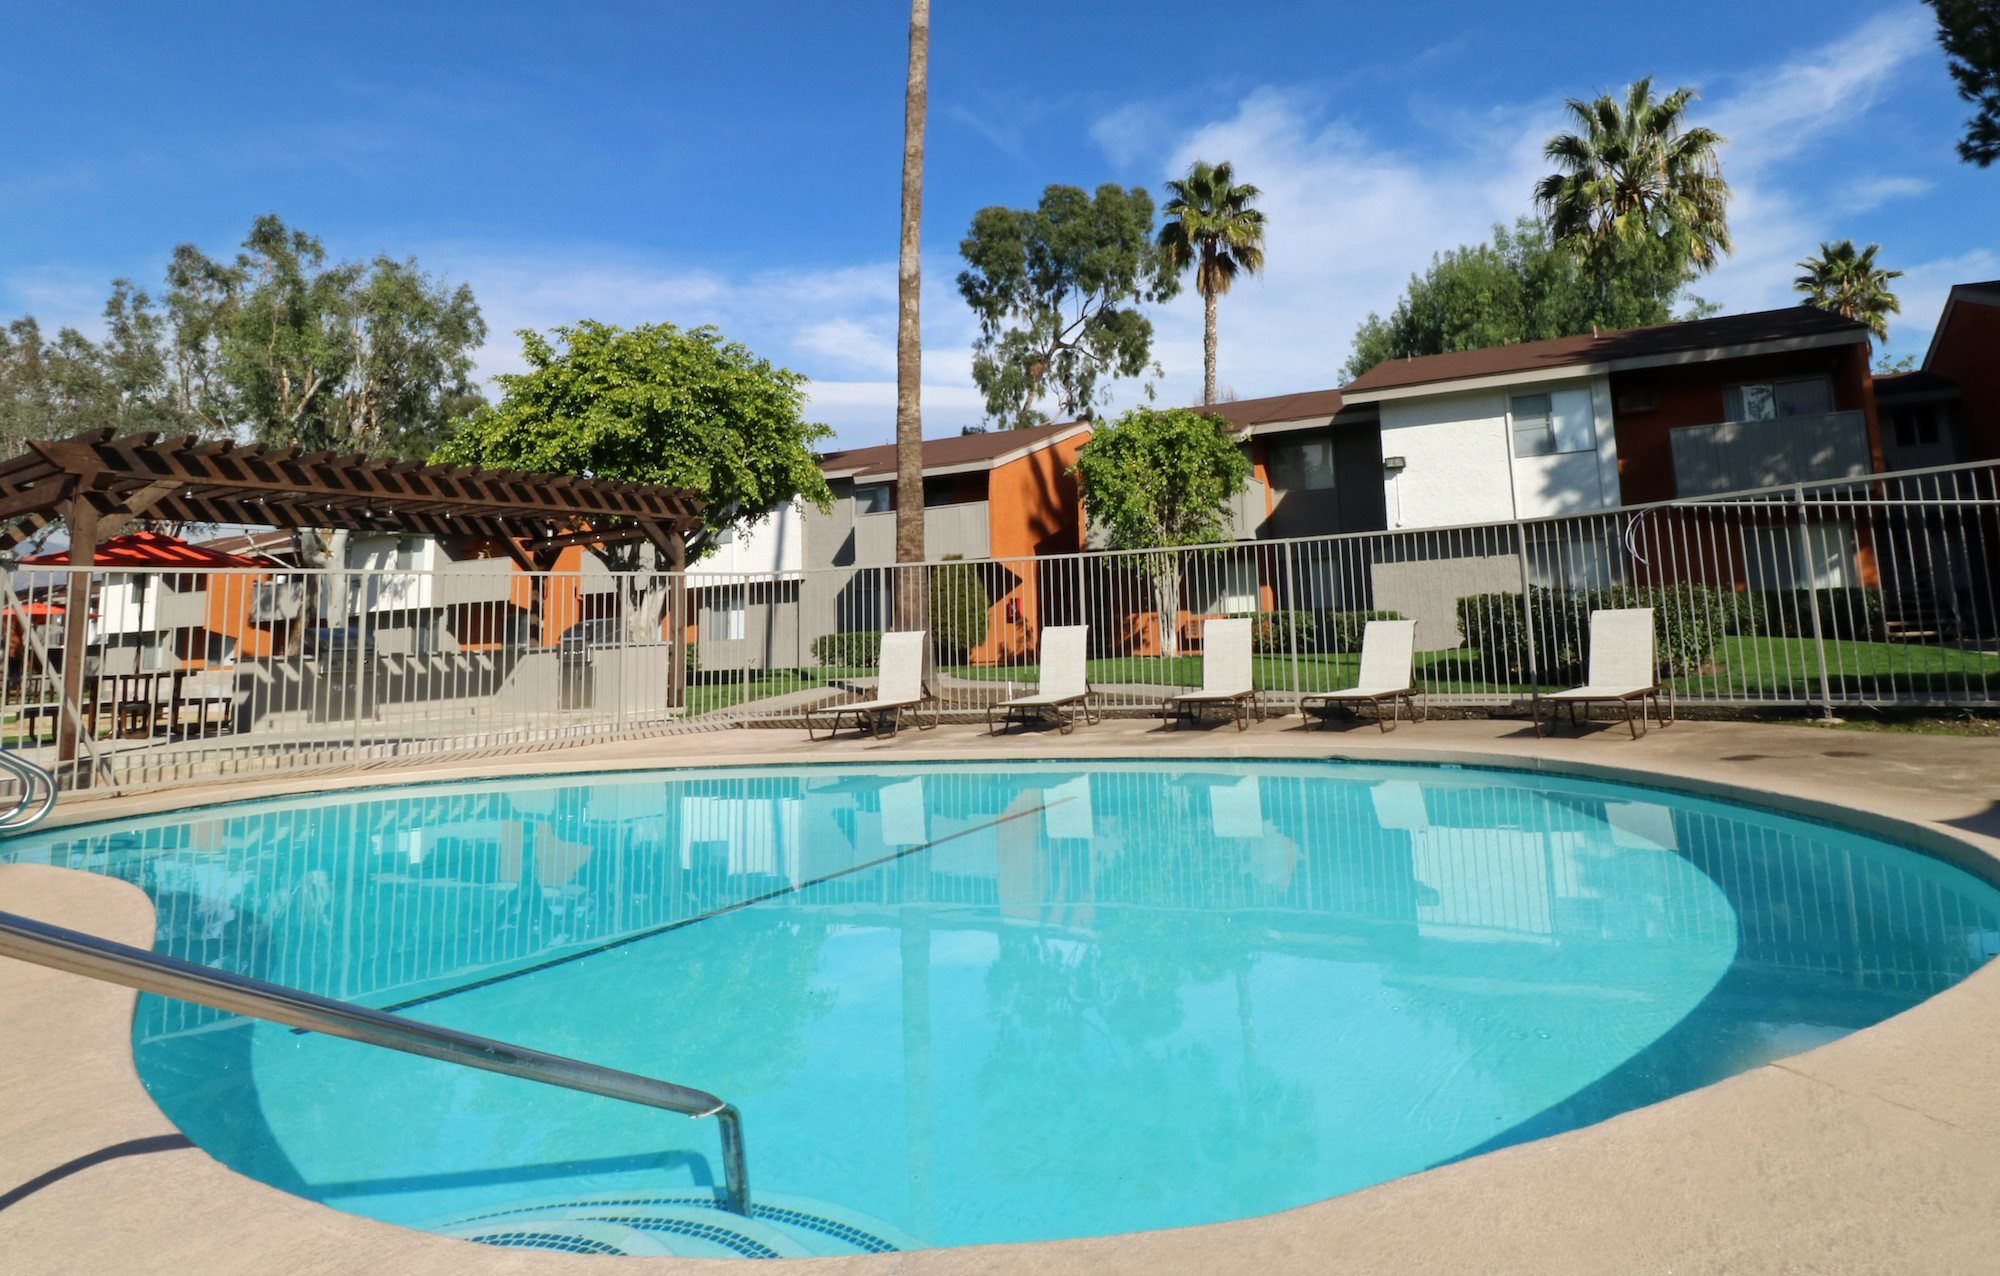 Luxury Apartments Pool. Citrus homepagegallery 3 Pacific Trails Luxury Apartment Homes  Apartments in Covina CA